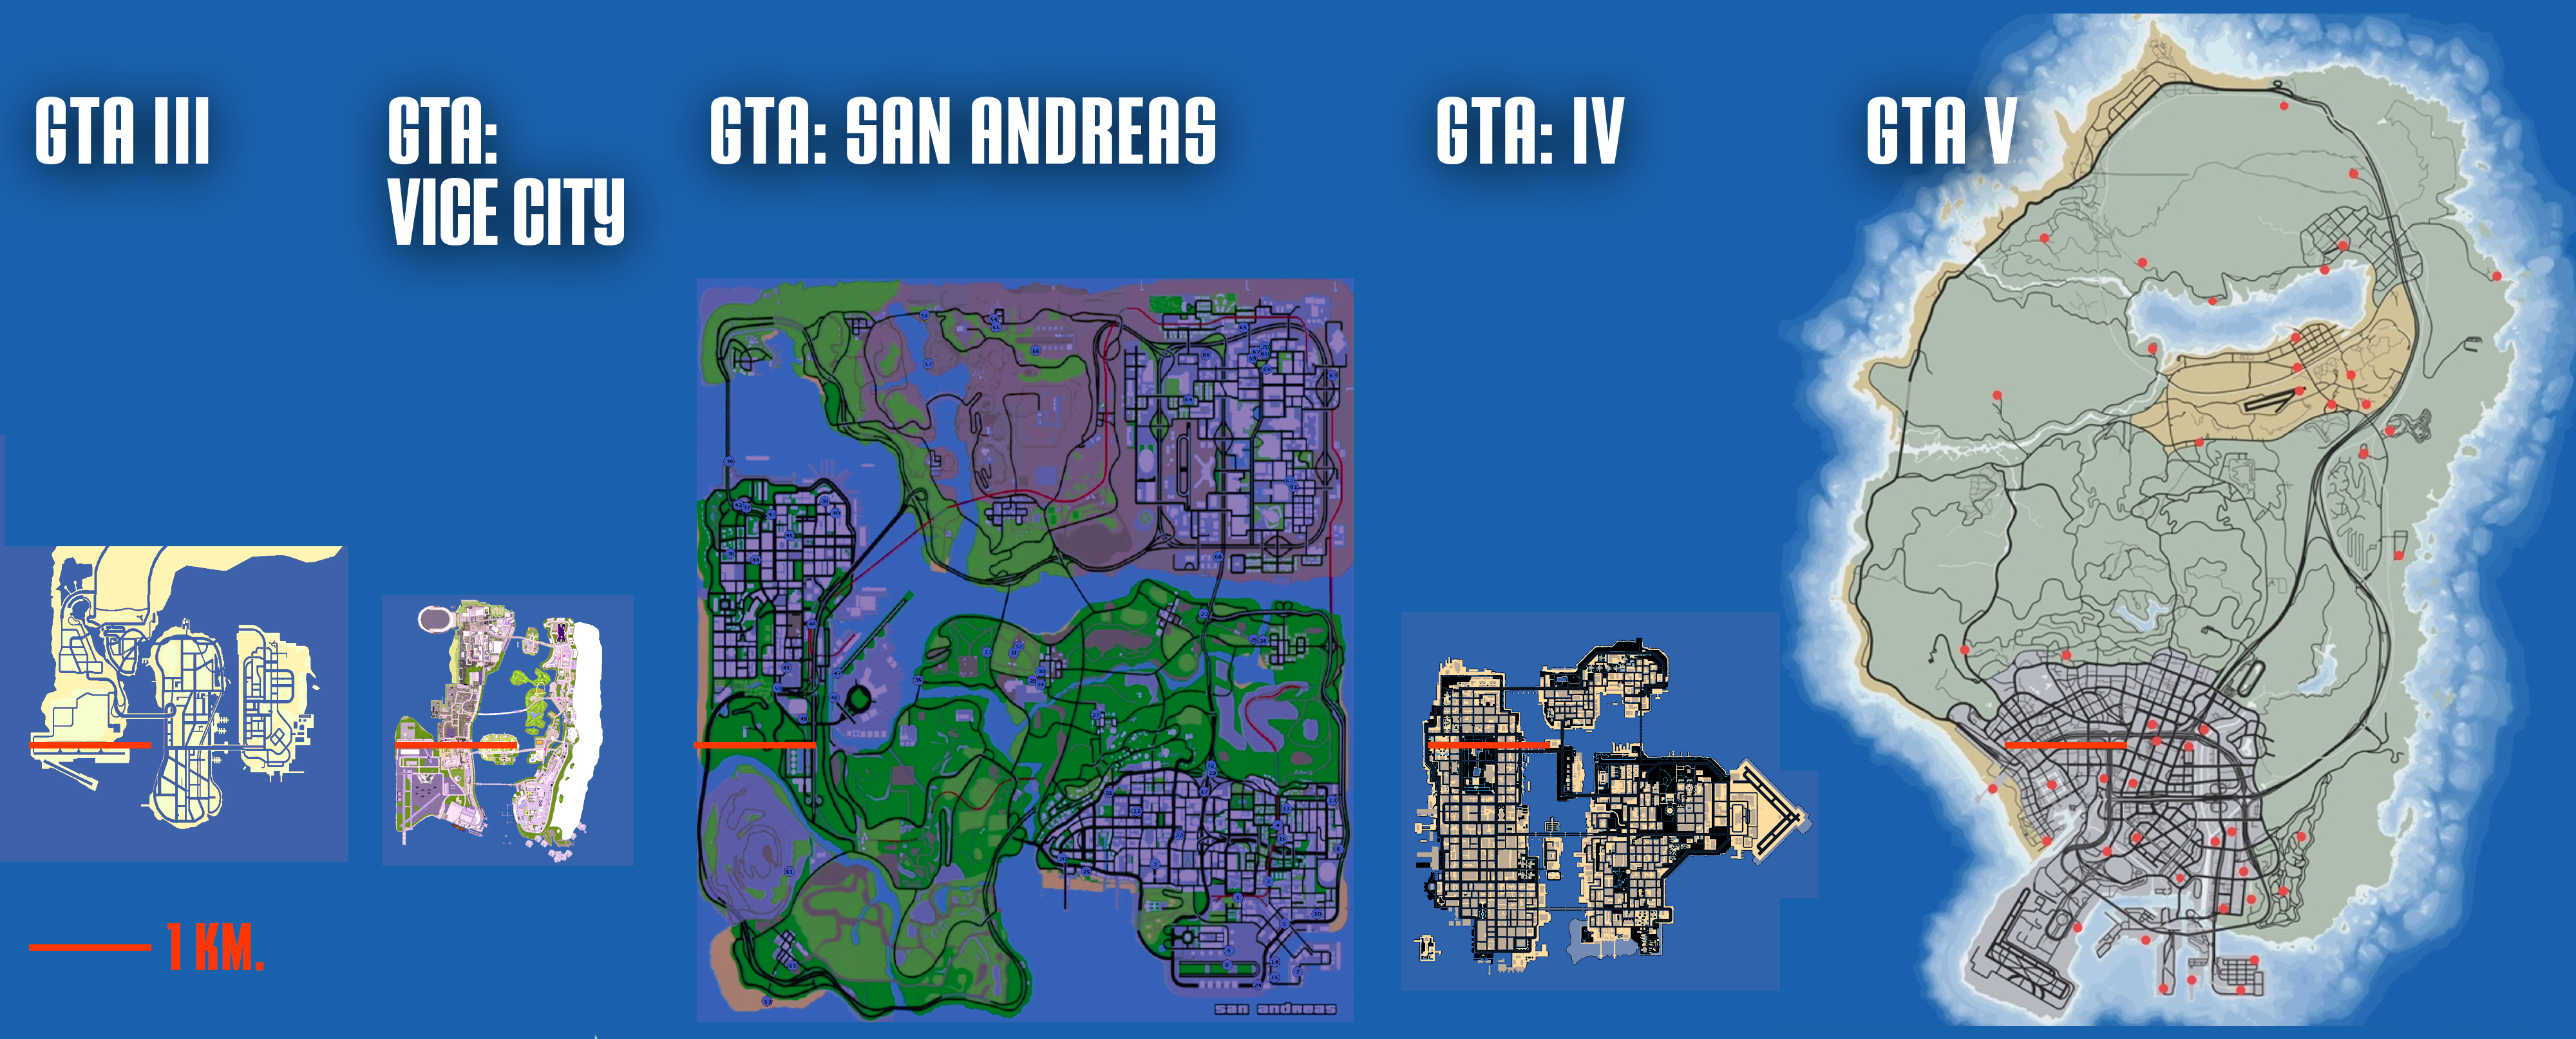 san andreas map size with Ayuntamiento 20gta 20v 20mapa on File HIGH RES GTA 3 GHOST TOWN as well 26898 Hd Dorogi V20 Final also File V tbd 1920x1080 besides File Taxi GTA4 Declasse Rear as well Watch.